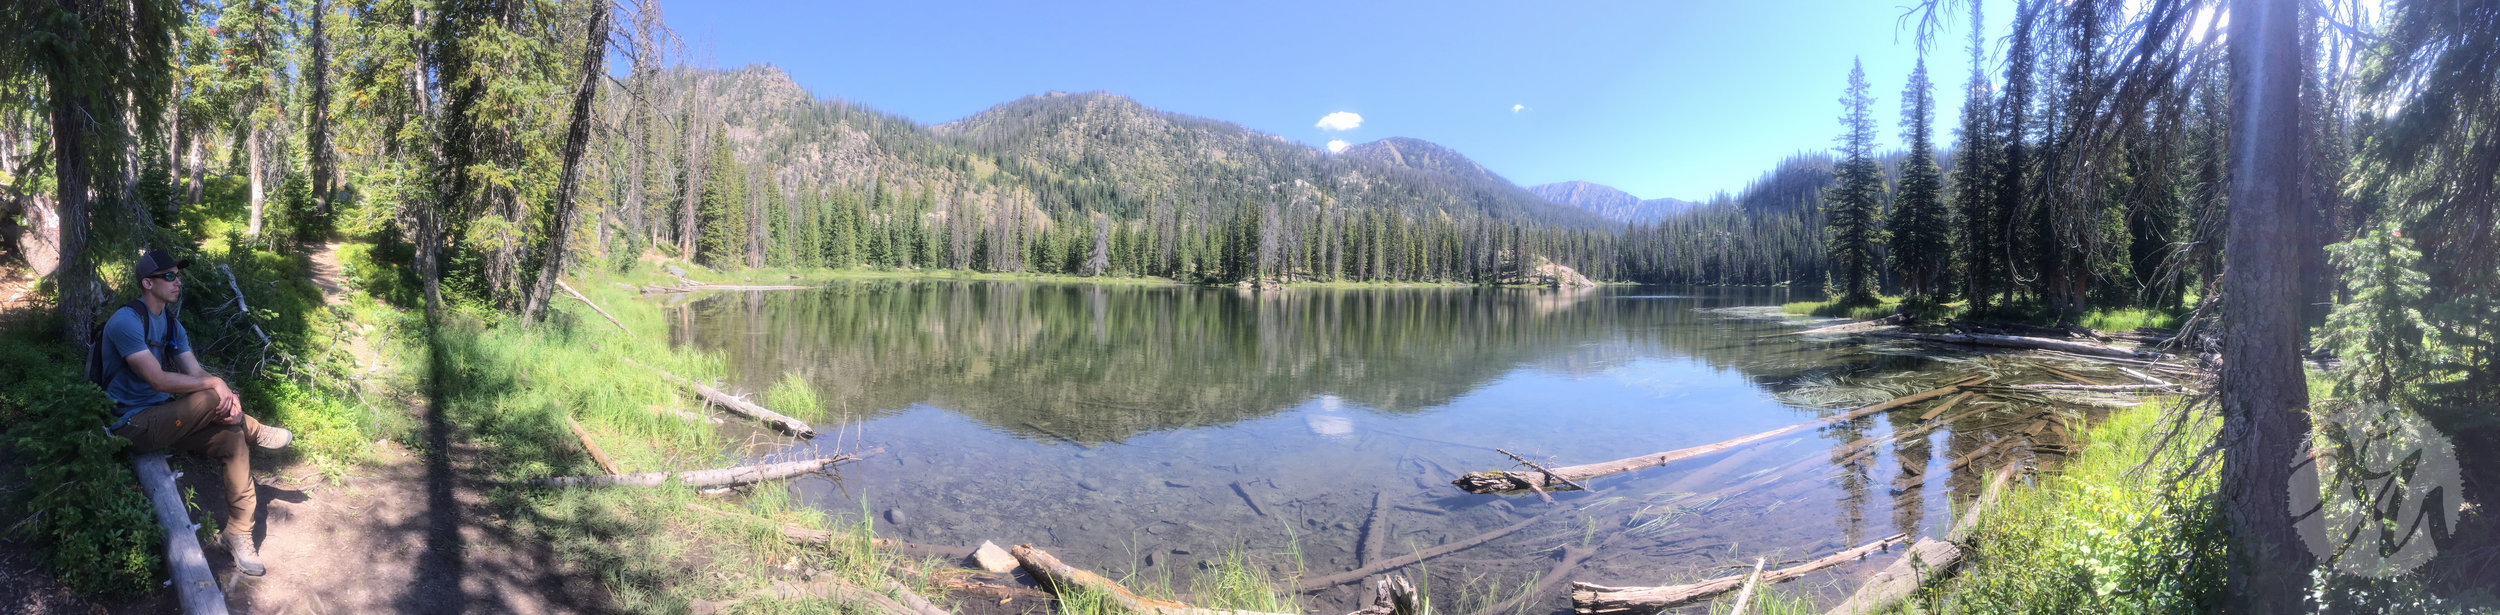 Gold Creek Lake near Clark, Colorado.